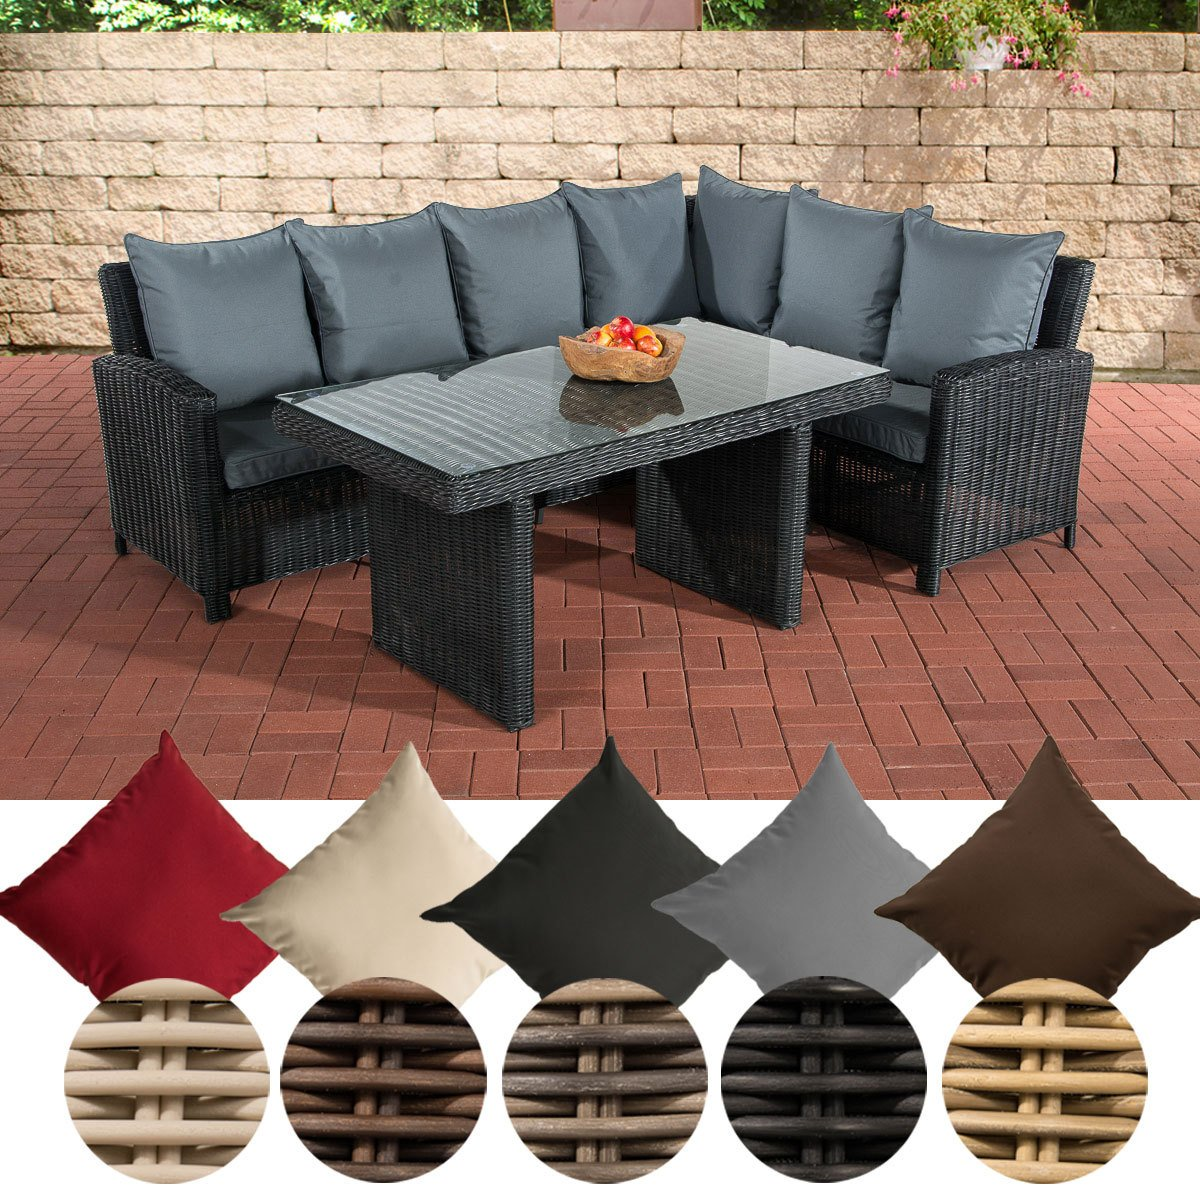 clp poly rattan garten sitzgruppe minari 5 mm rund geflecht eckbank tisch 140 x 80 cm 6. Black Bedroom Furniture Sets. Home Design Ideas